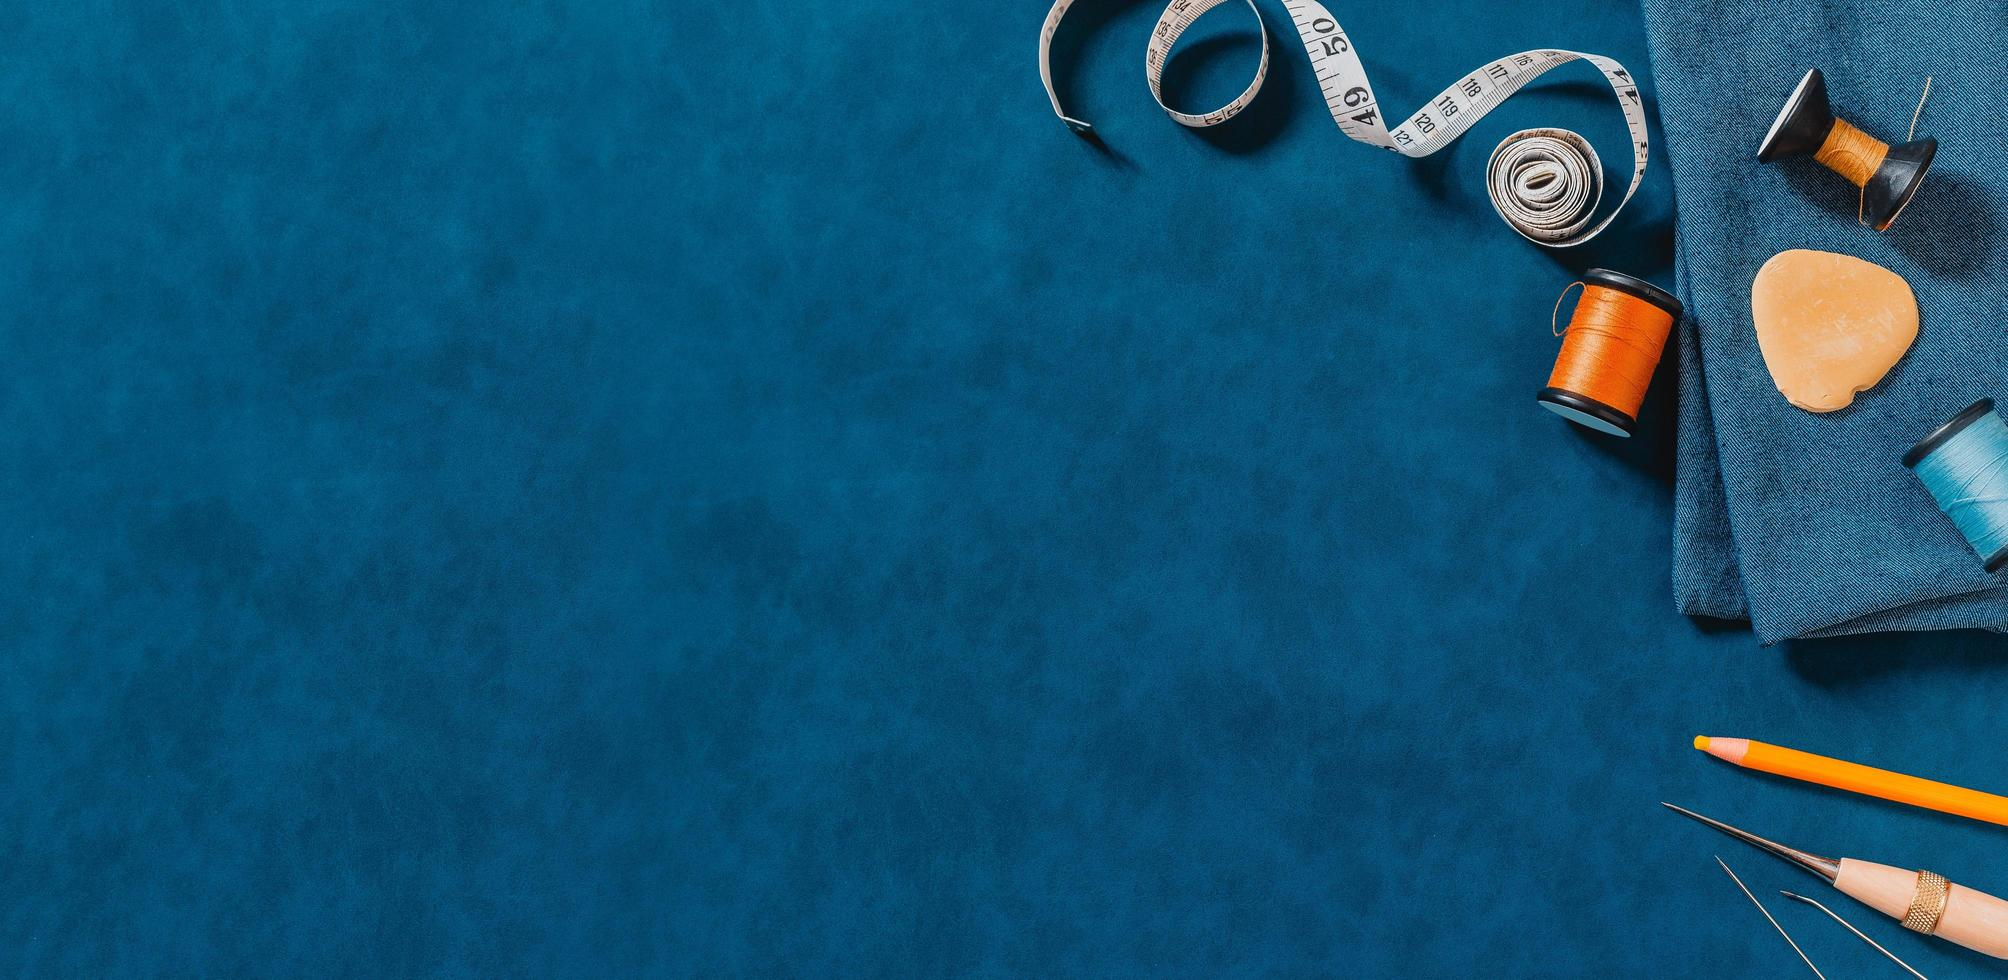 Blue textured background with sewing tools photo